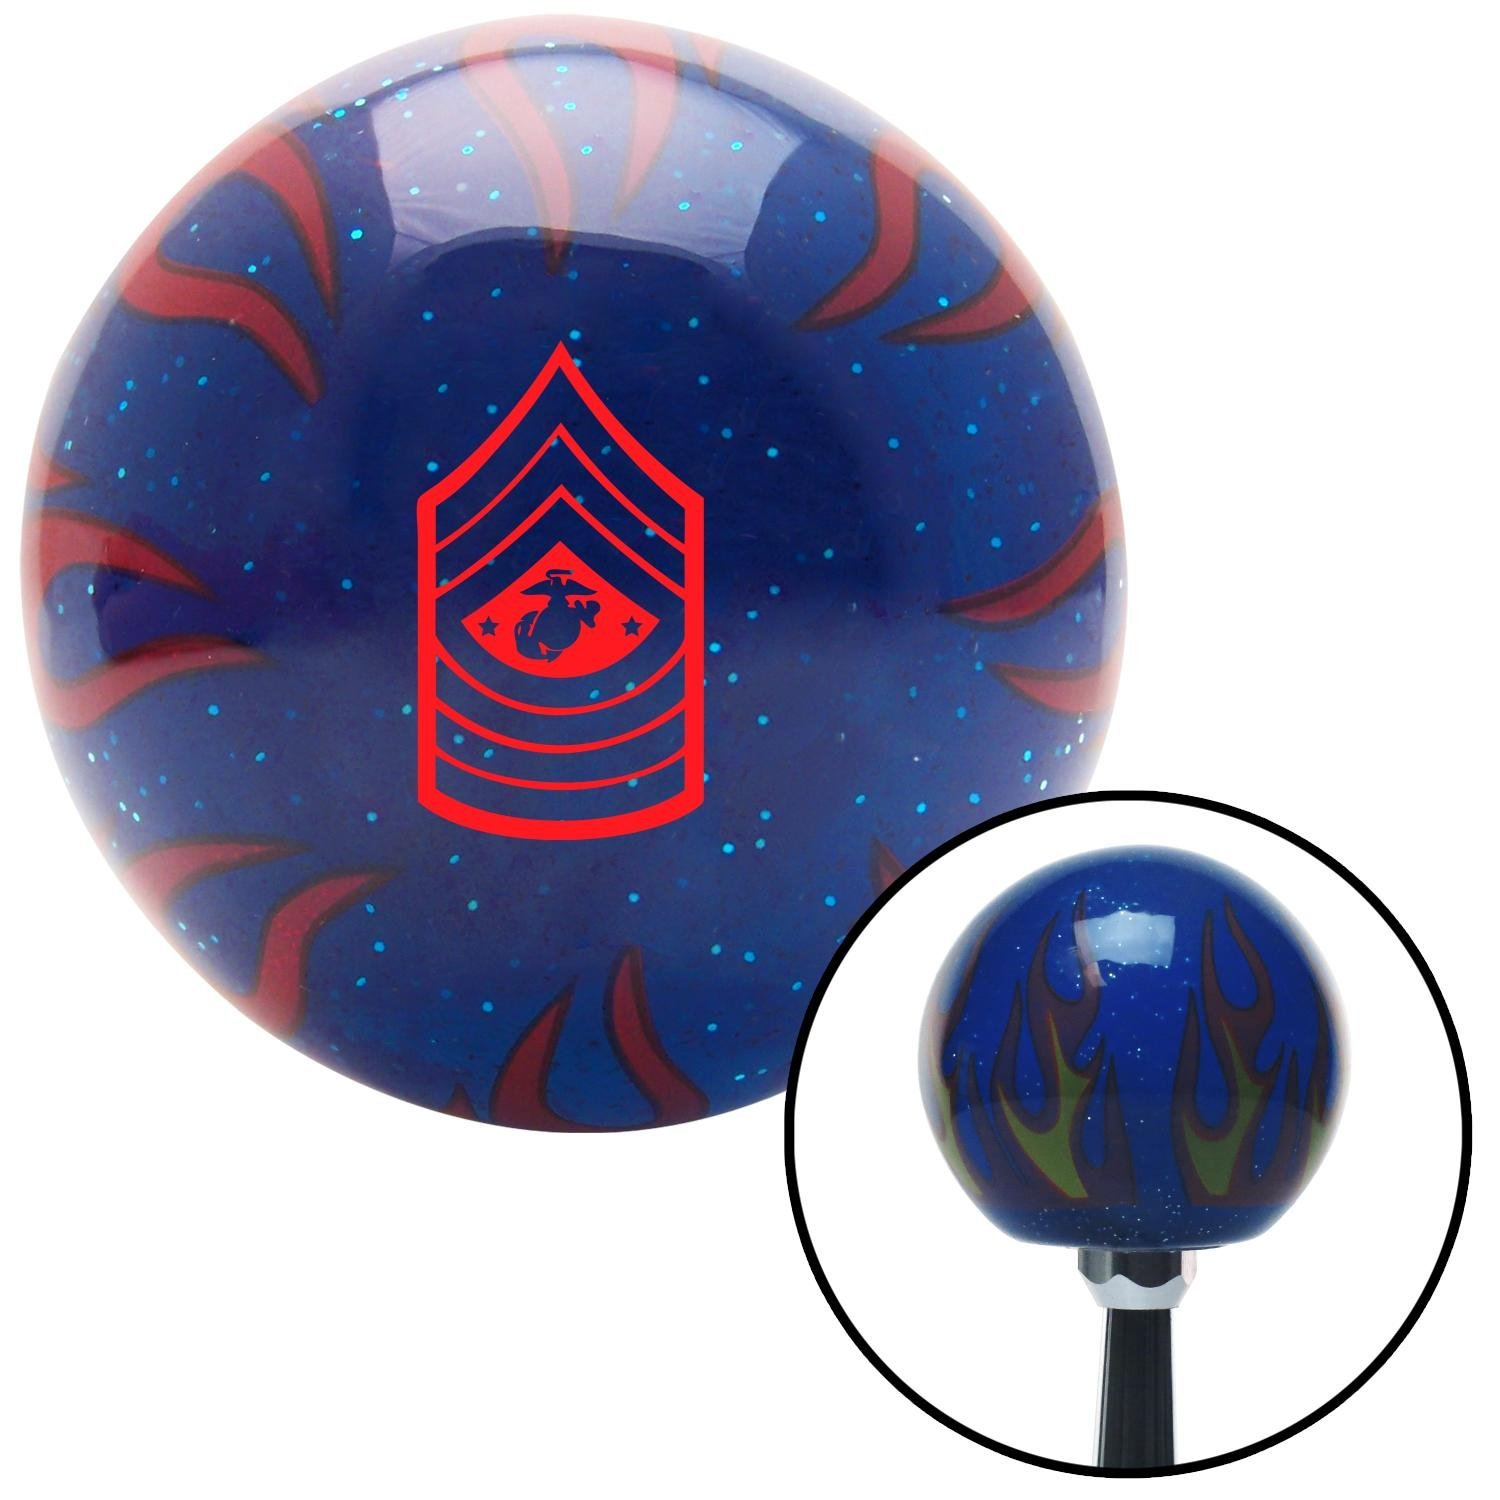 Red 11 Sergeant Major of The Marine Corps American Shifter 249928 Blue Flame Metal Flake Shift Knob with M16 x 1.5 Insert